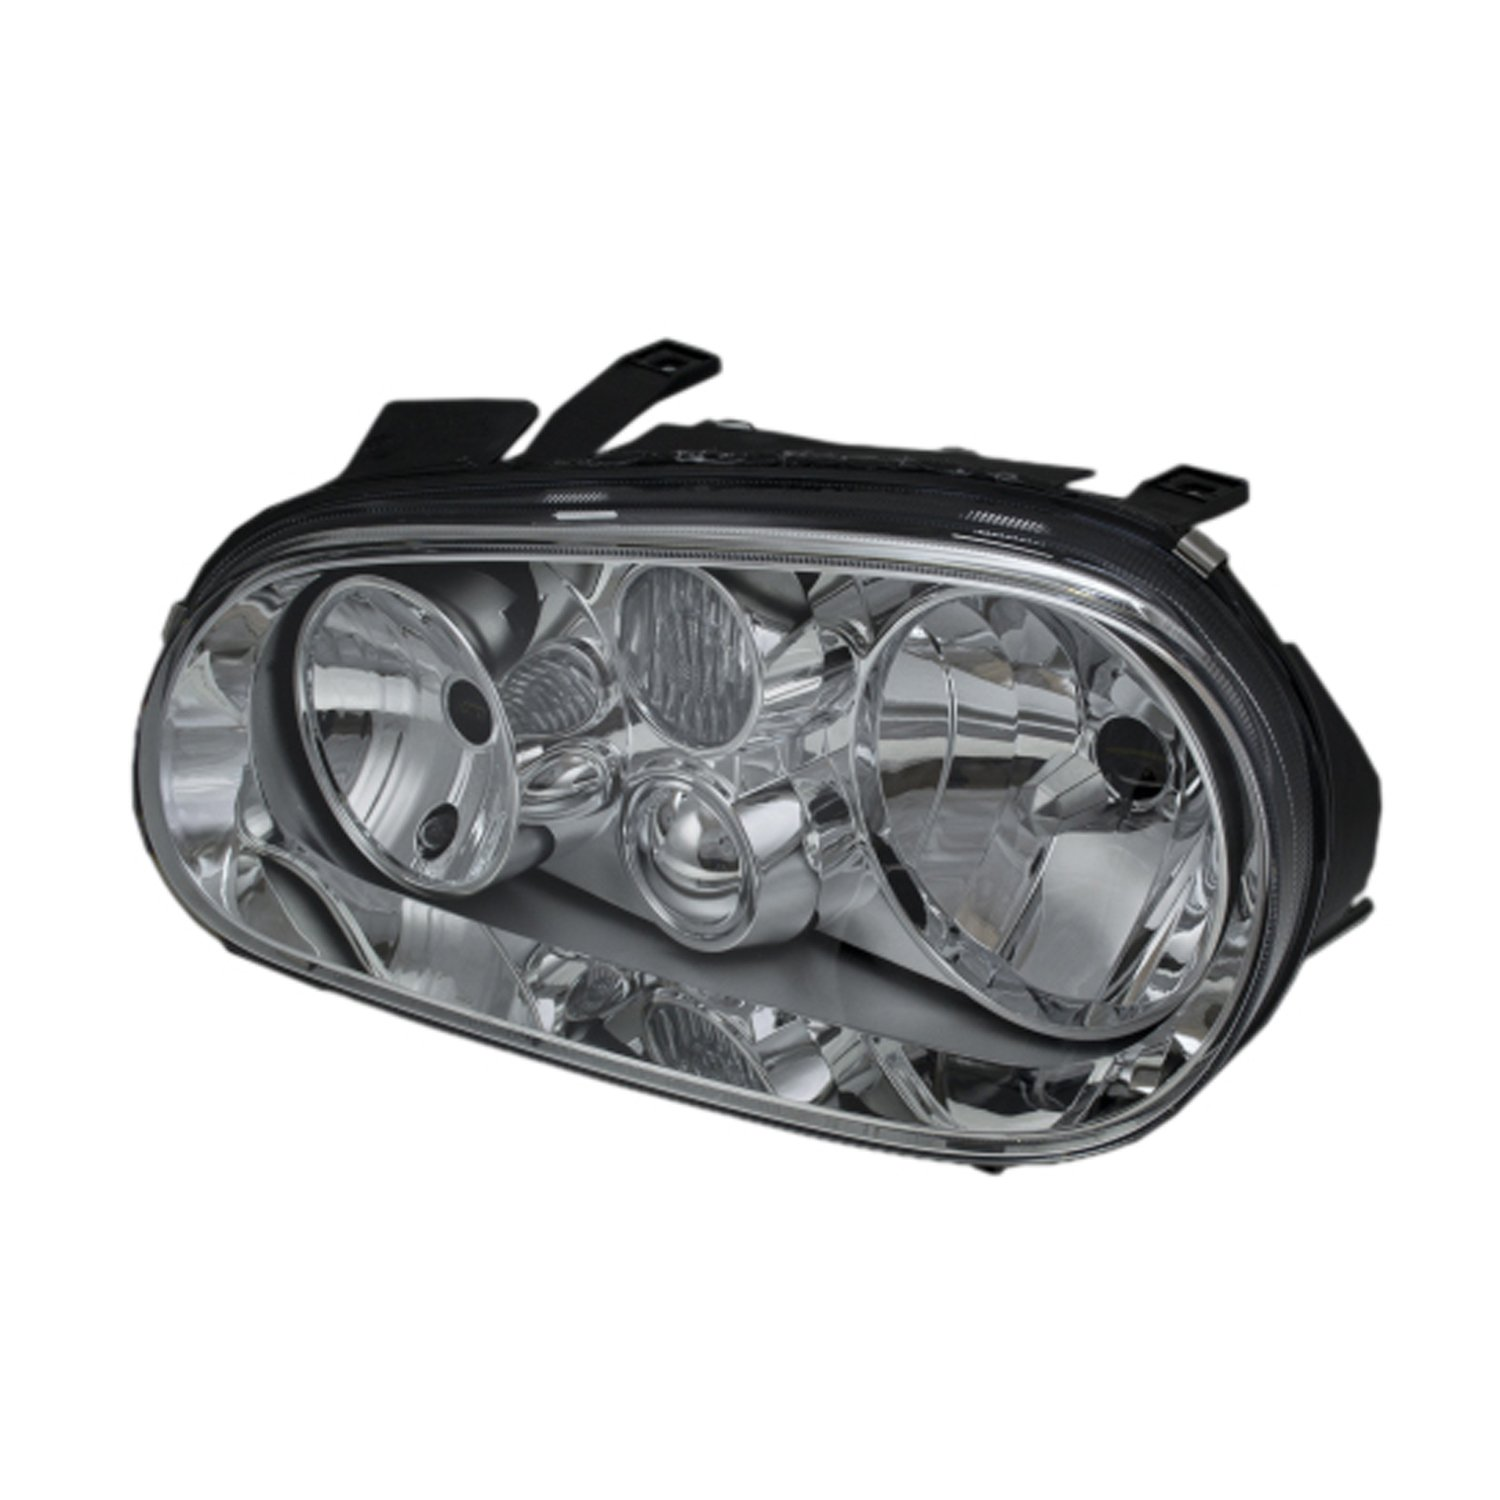 6 inch 2007 Dodge 3500-5500 CHASSIS CAB Inside Post mount spotlight Driver side WITH install kit LED -Chrome